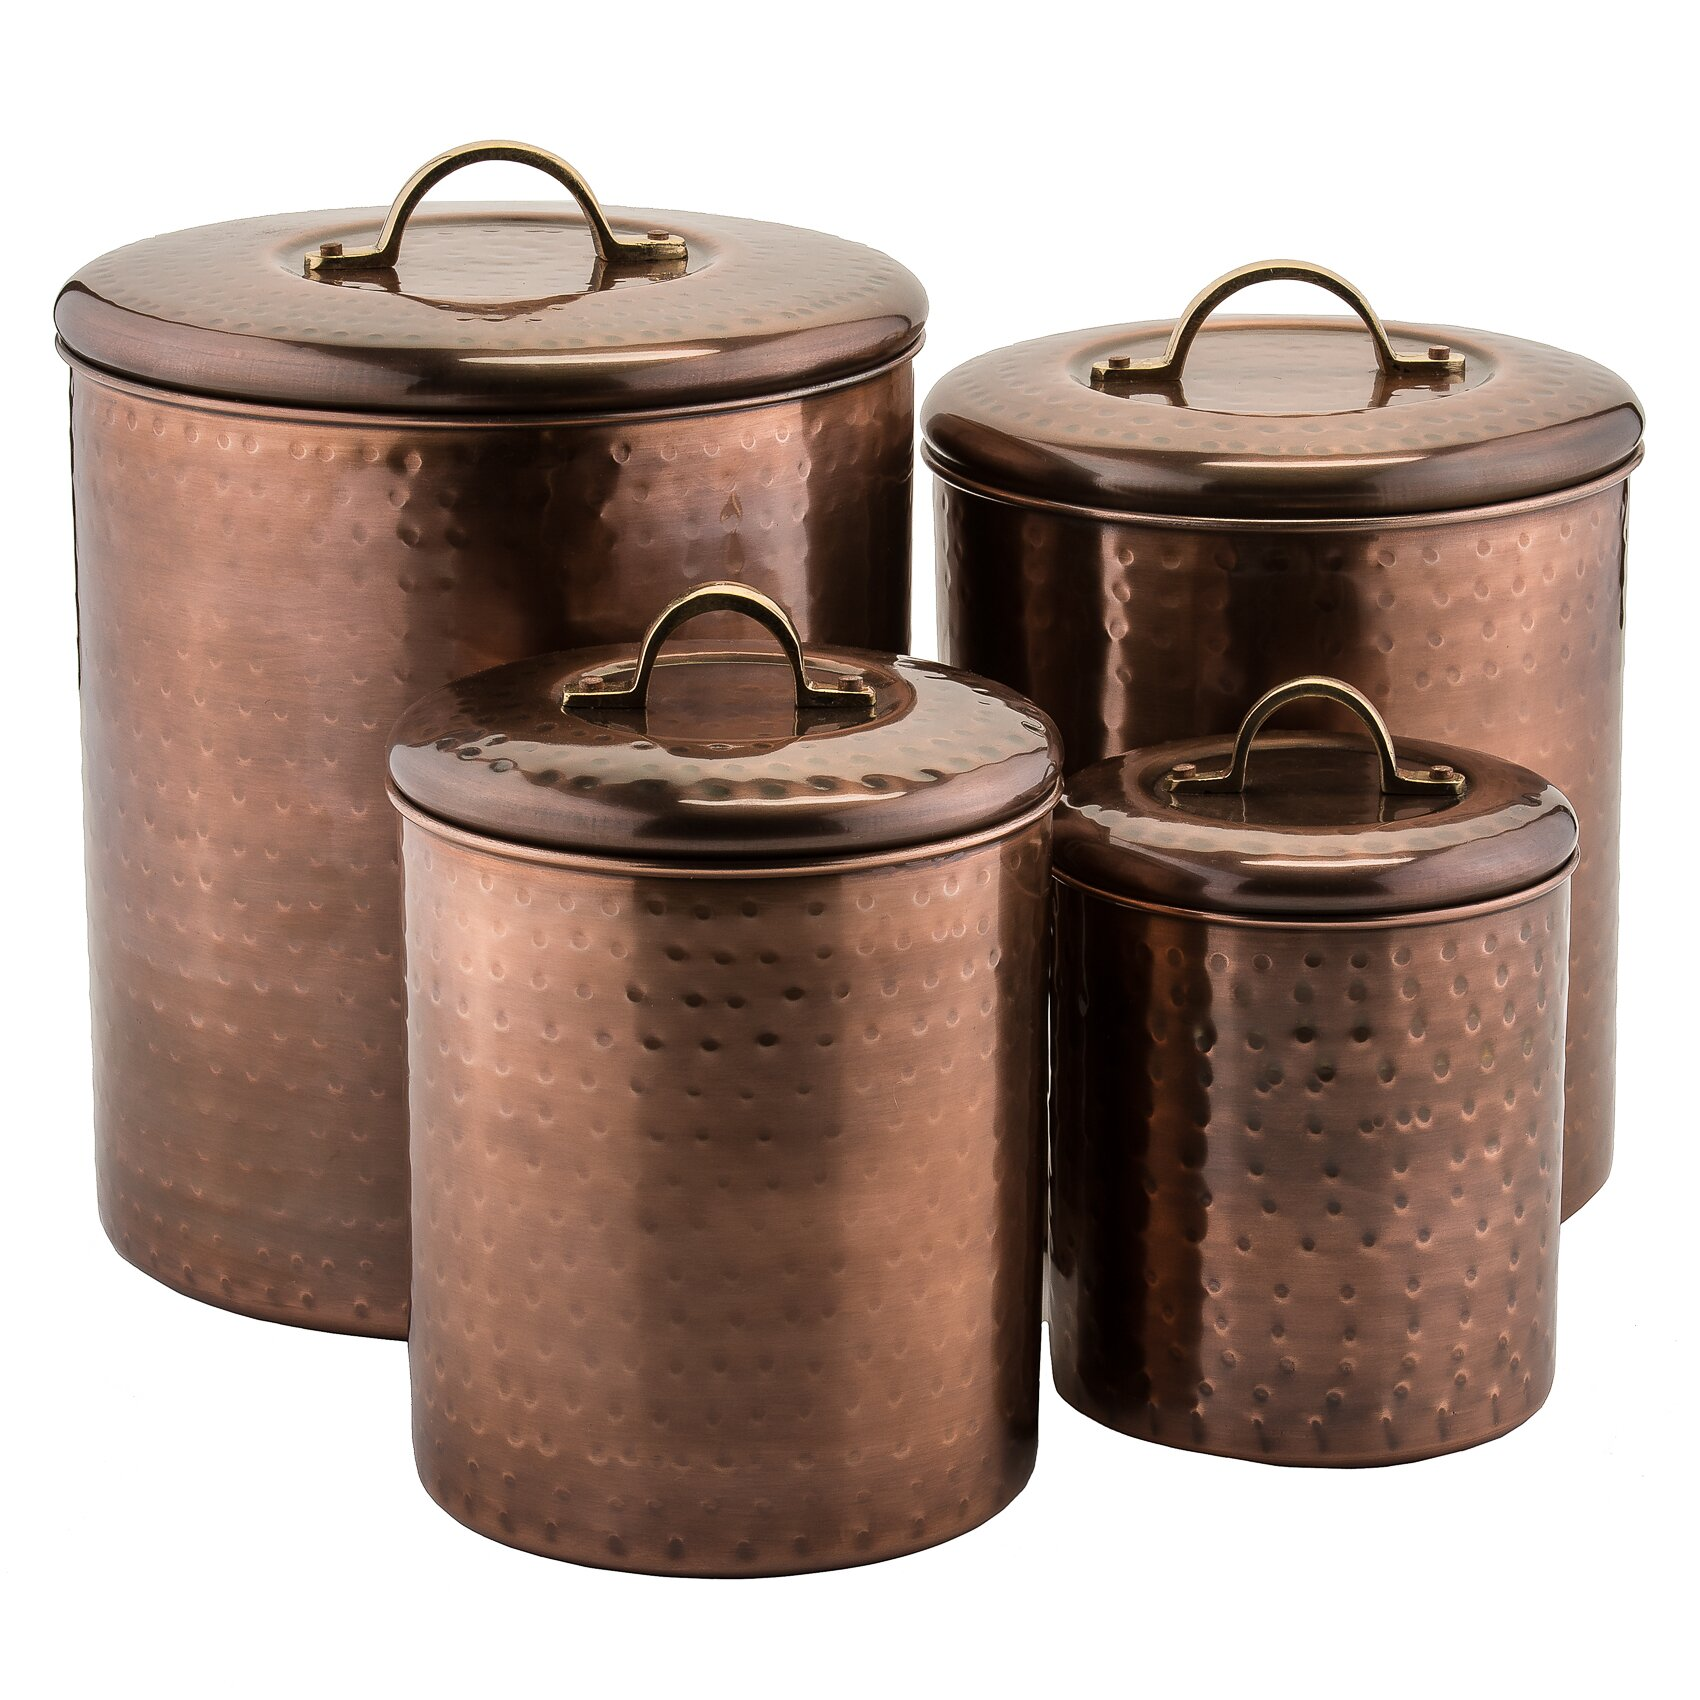 28 4 piece kitchen canister sets 4 piece canister set 4 piece kitchen canister sets old dutch 4 piece kitchen canister set amp reviews wayfair ca